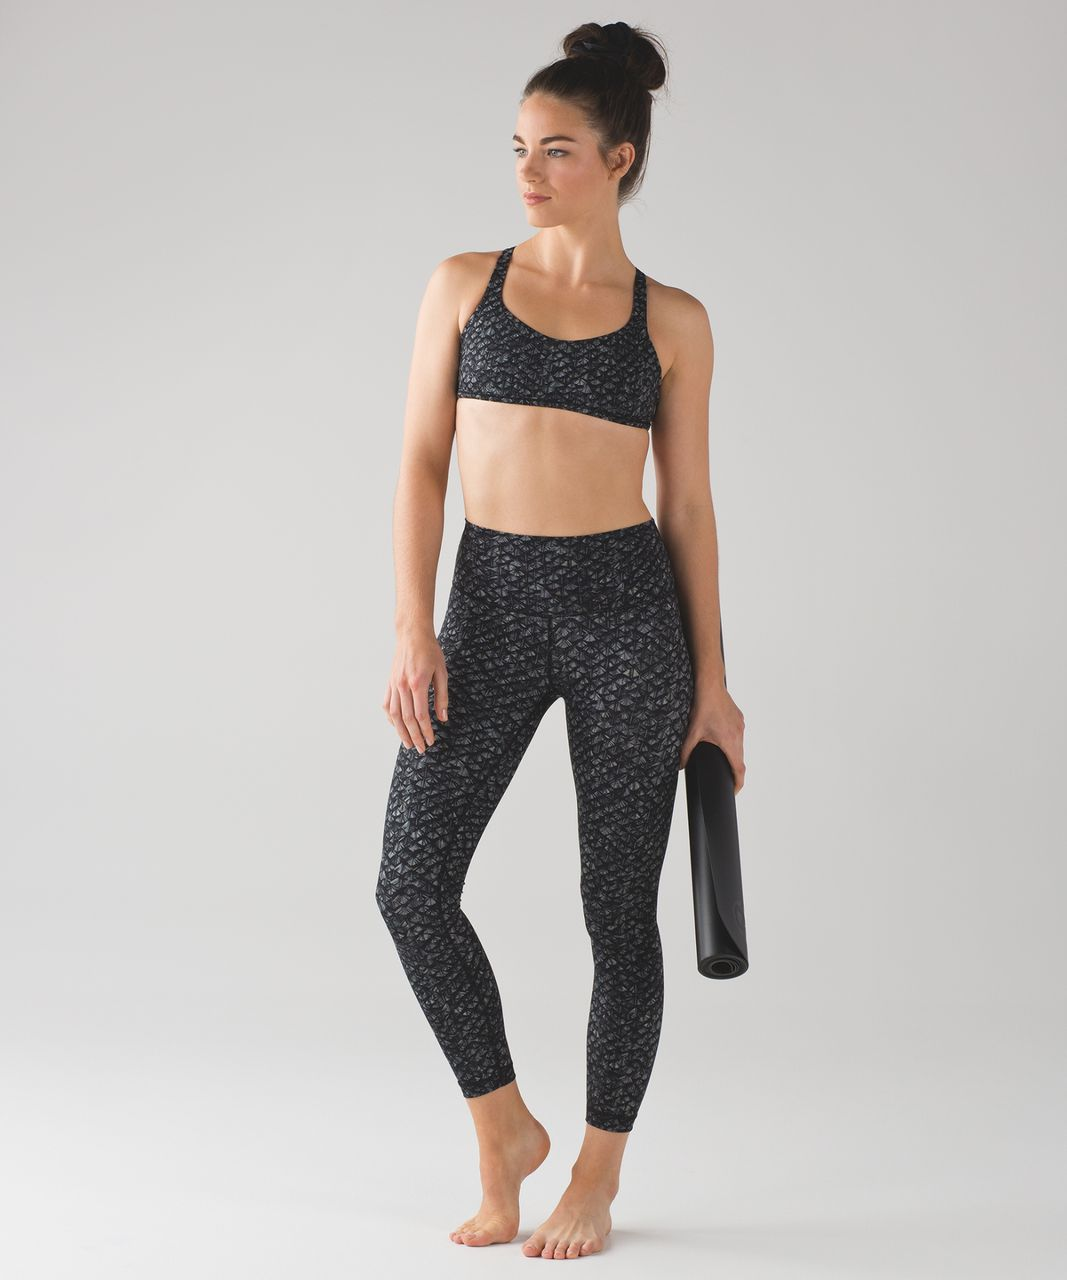 Lululemon High Times Pant (Nulux) - Iridescent Multi Black